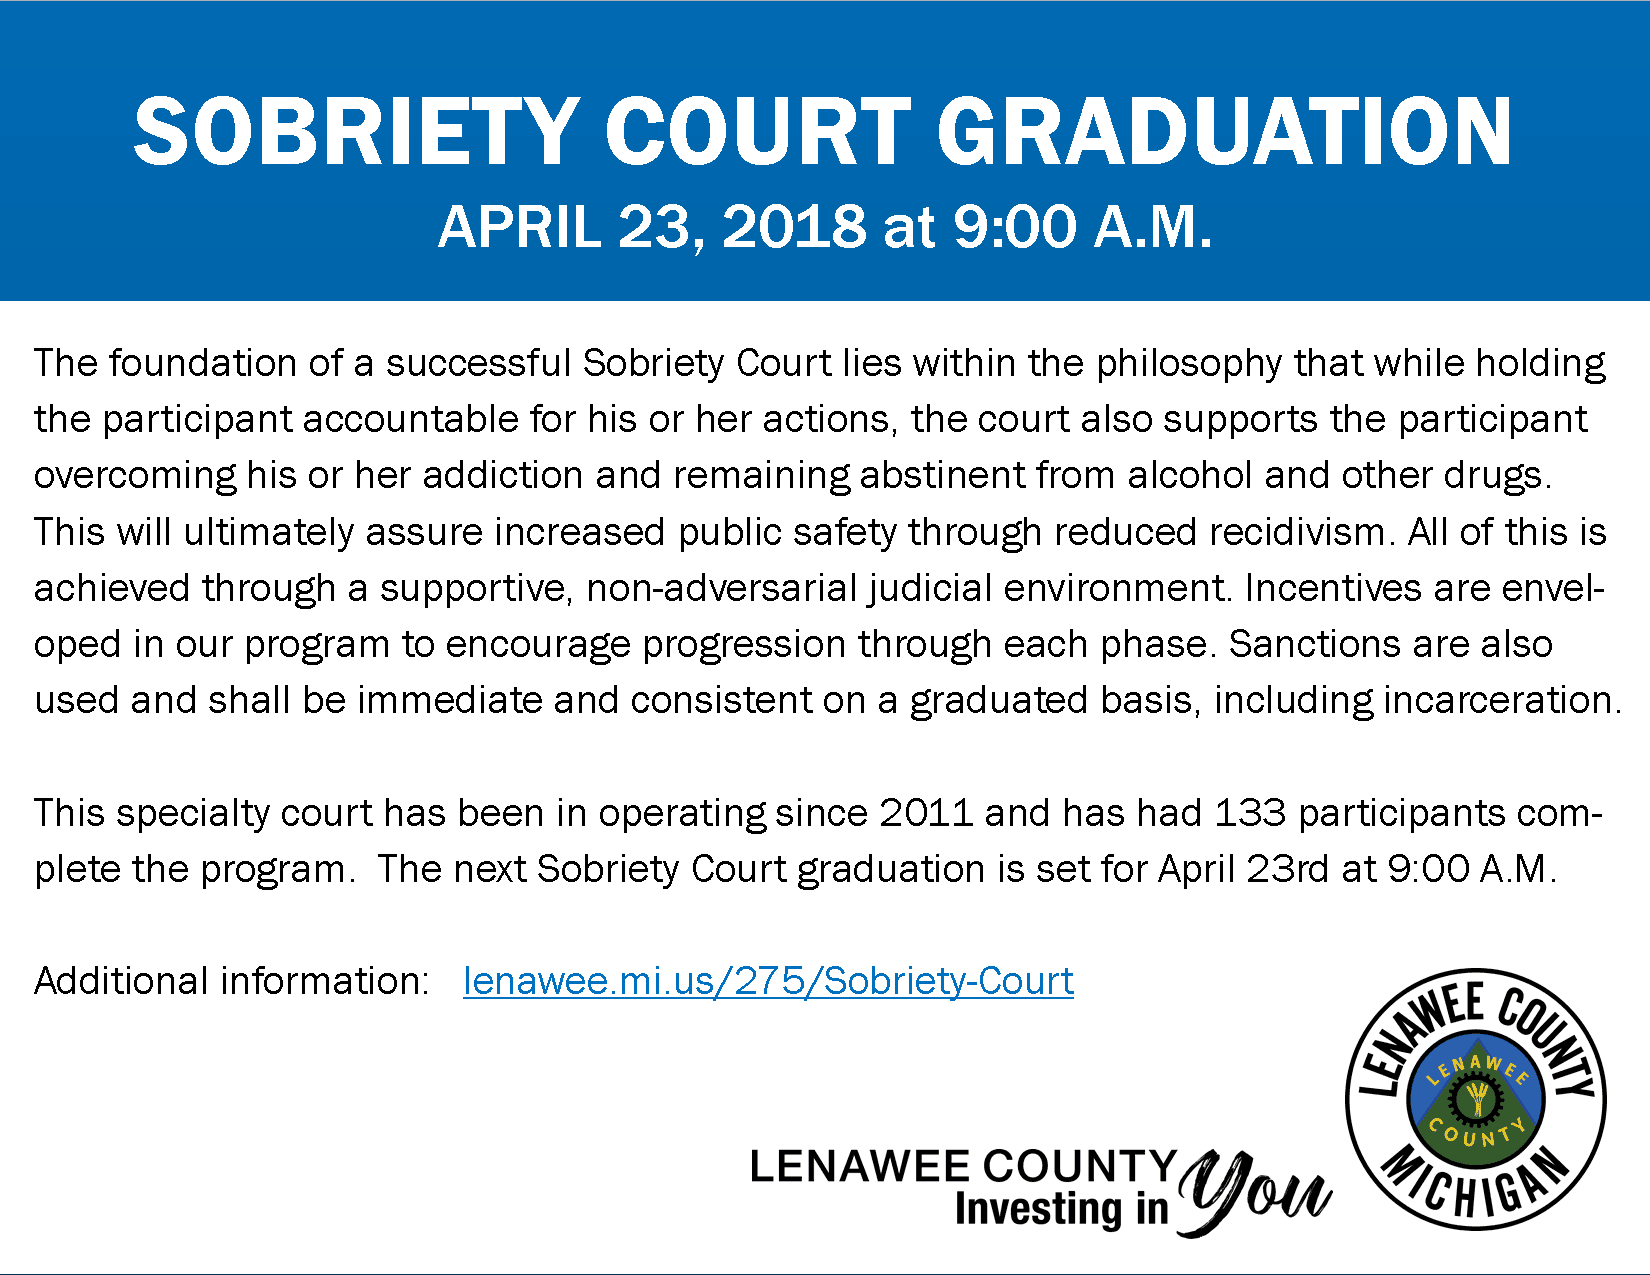 sobriety court graduation